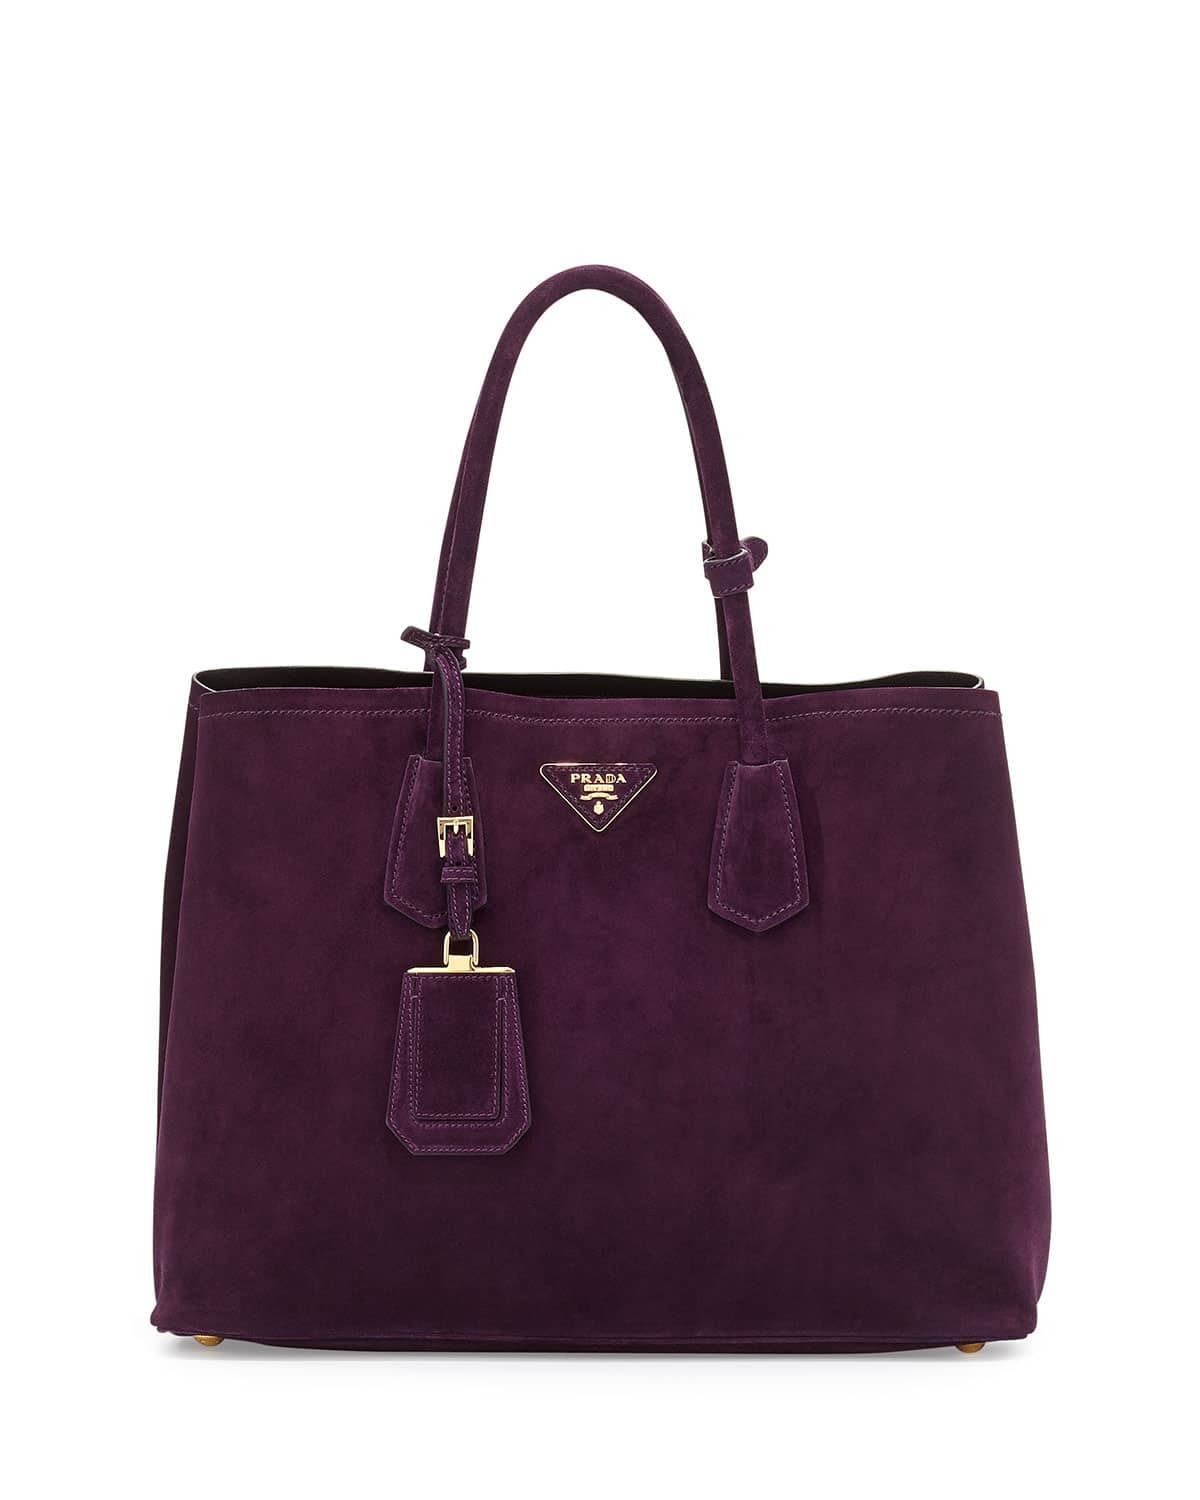 Prada Dark Purple Suede Double Bag